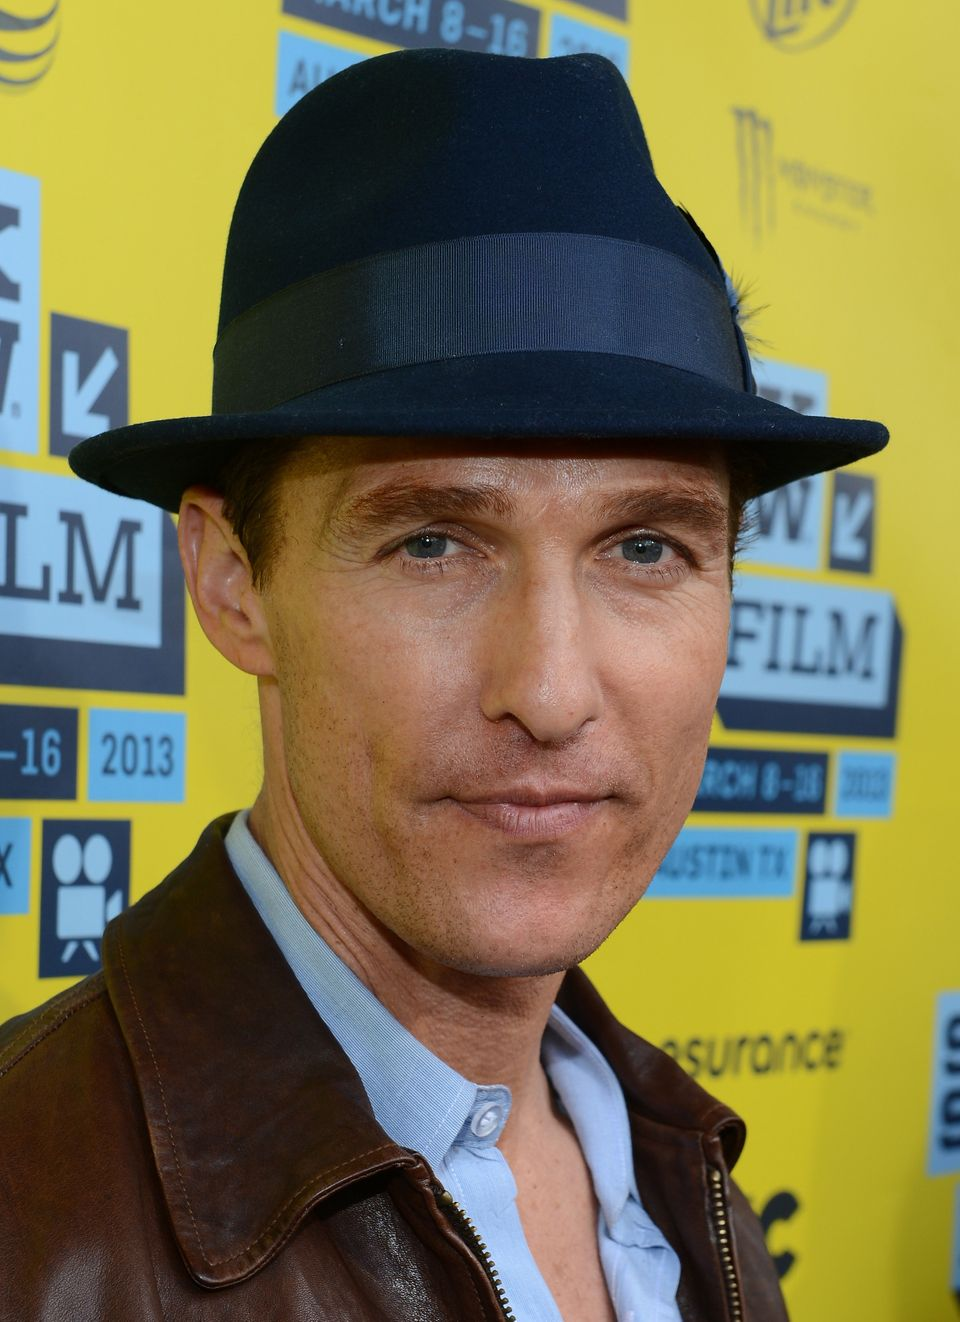 AUSTIN, TX - MARCH 10:  Actor Matthew McConaughey attends the 'Mud' screening at the 2013 SXSW Music, Film + Interactive Fest